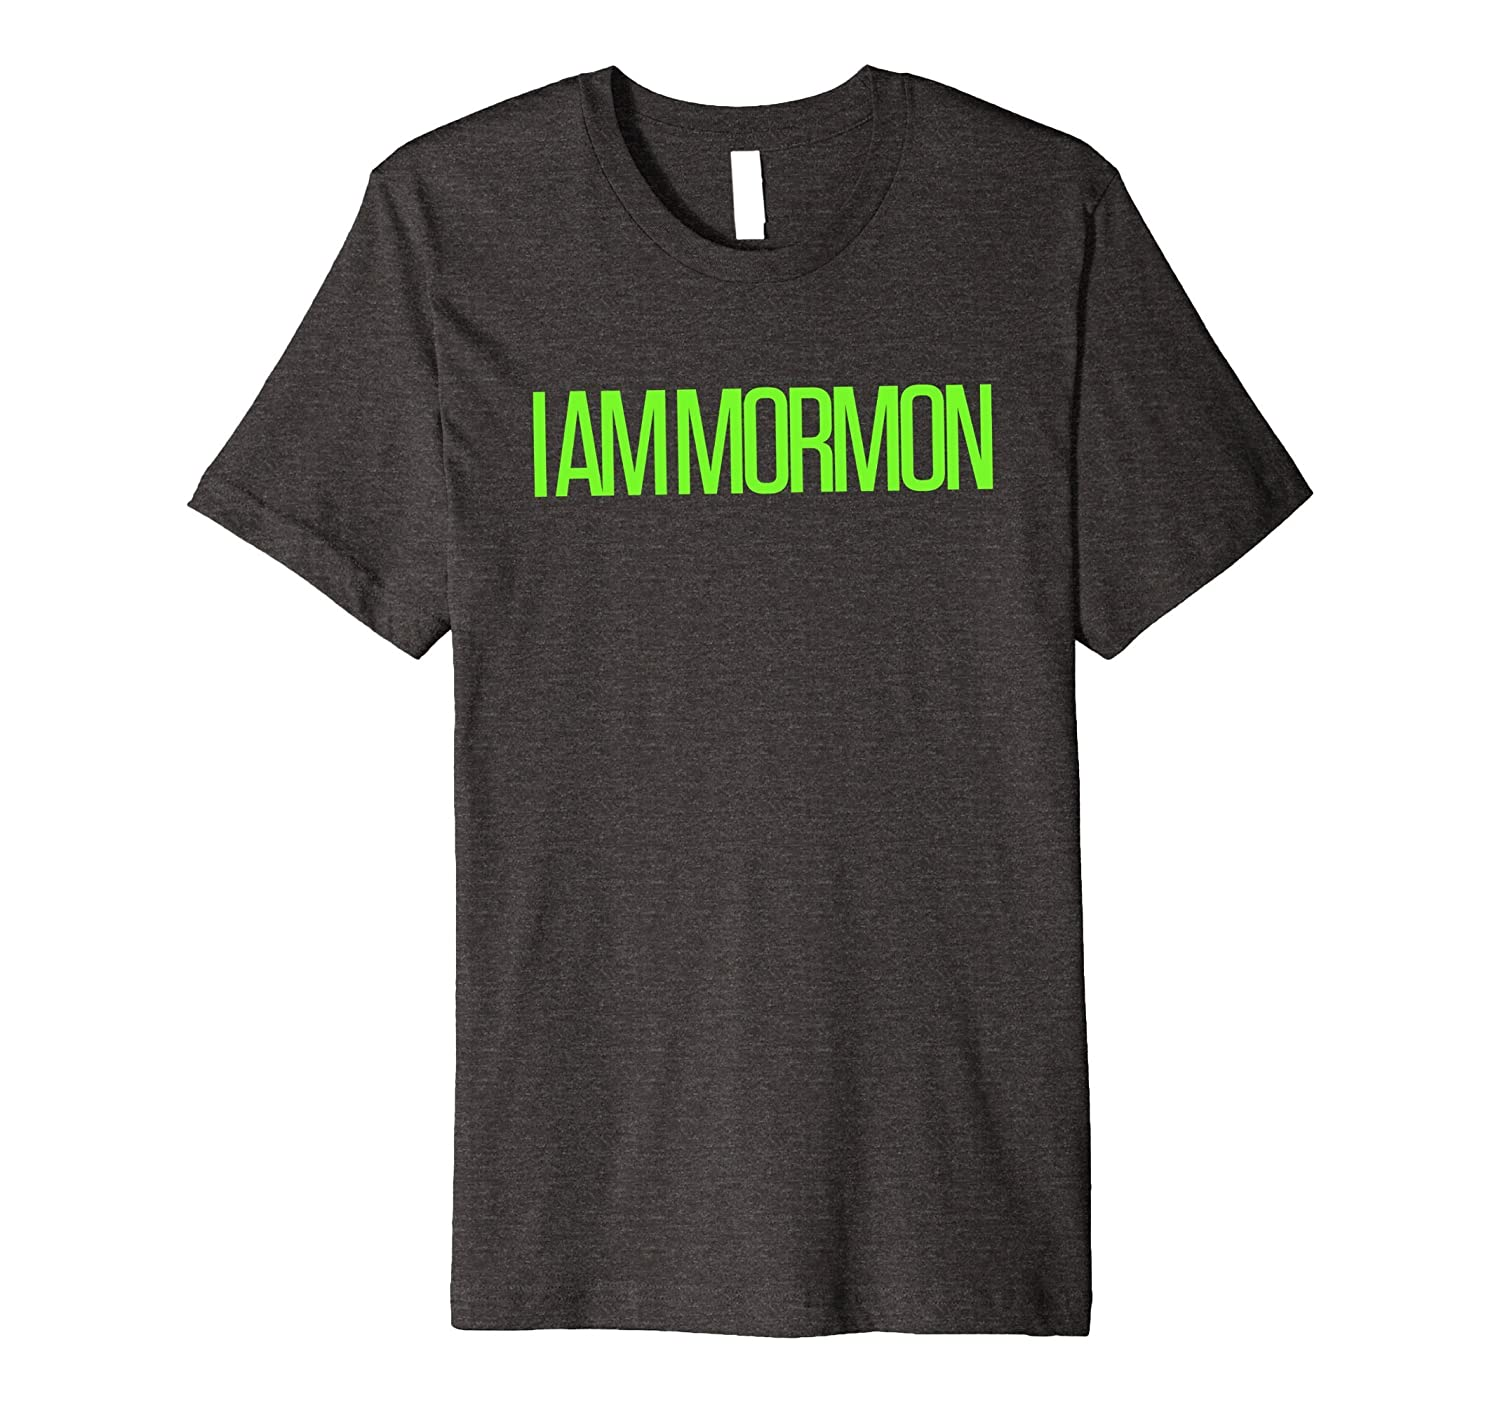 """I AM MORMON"" Graphic Tee Text-Base Shirt"